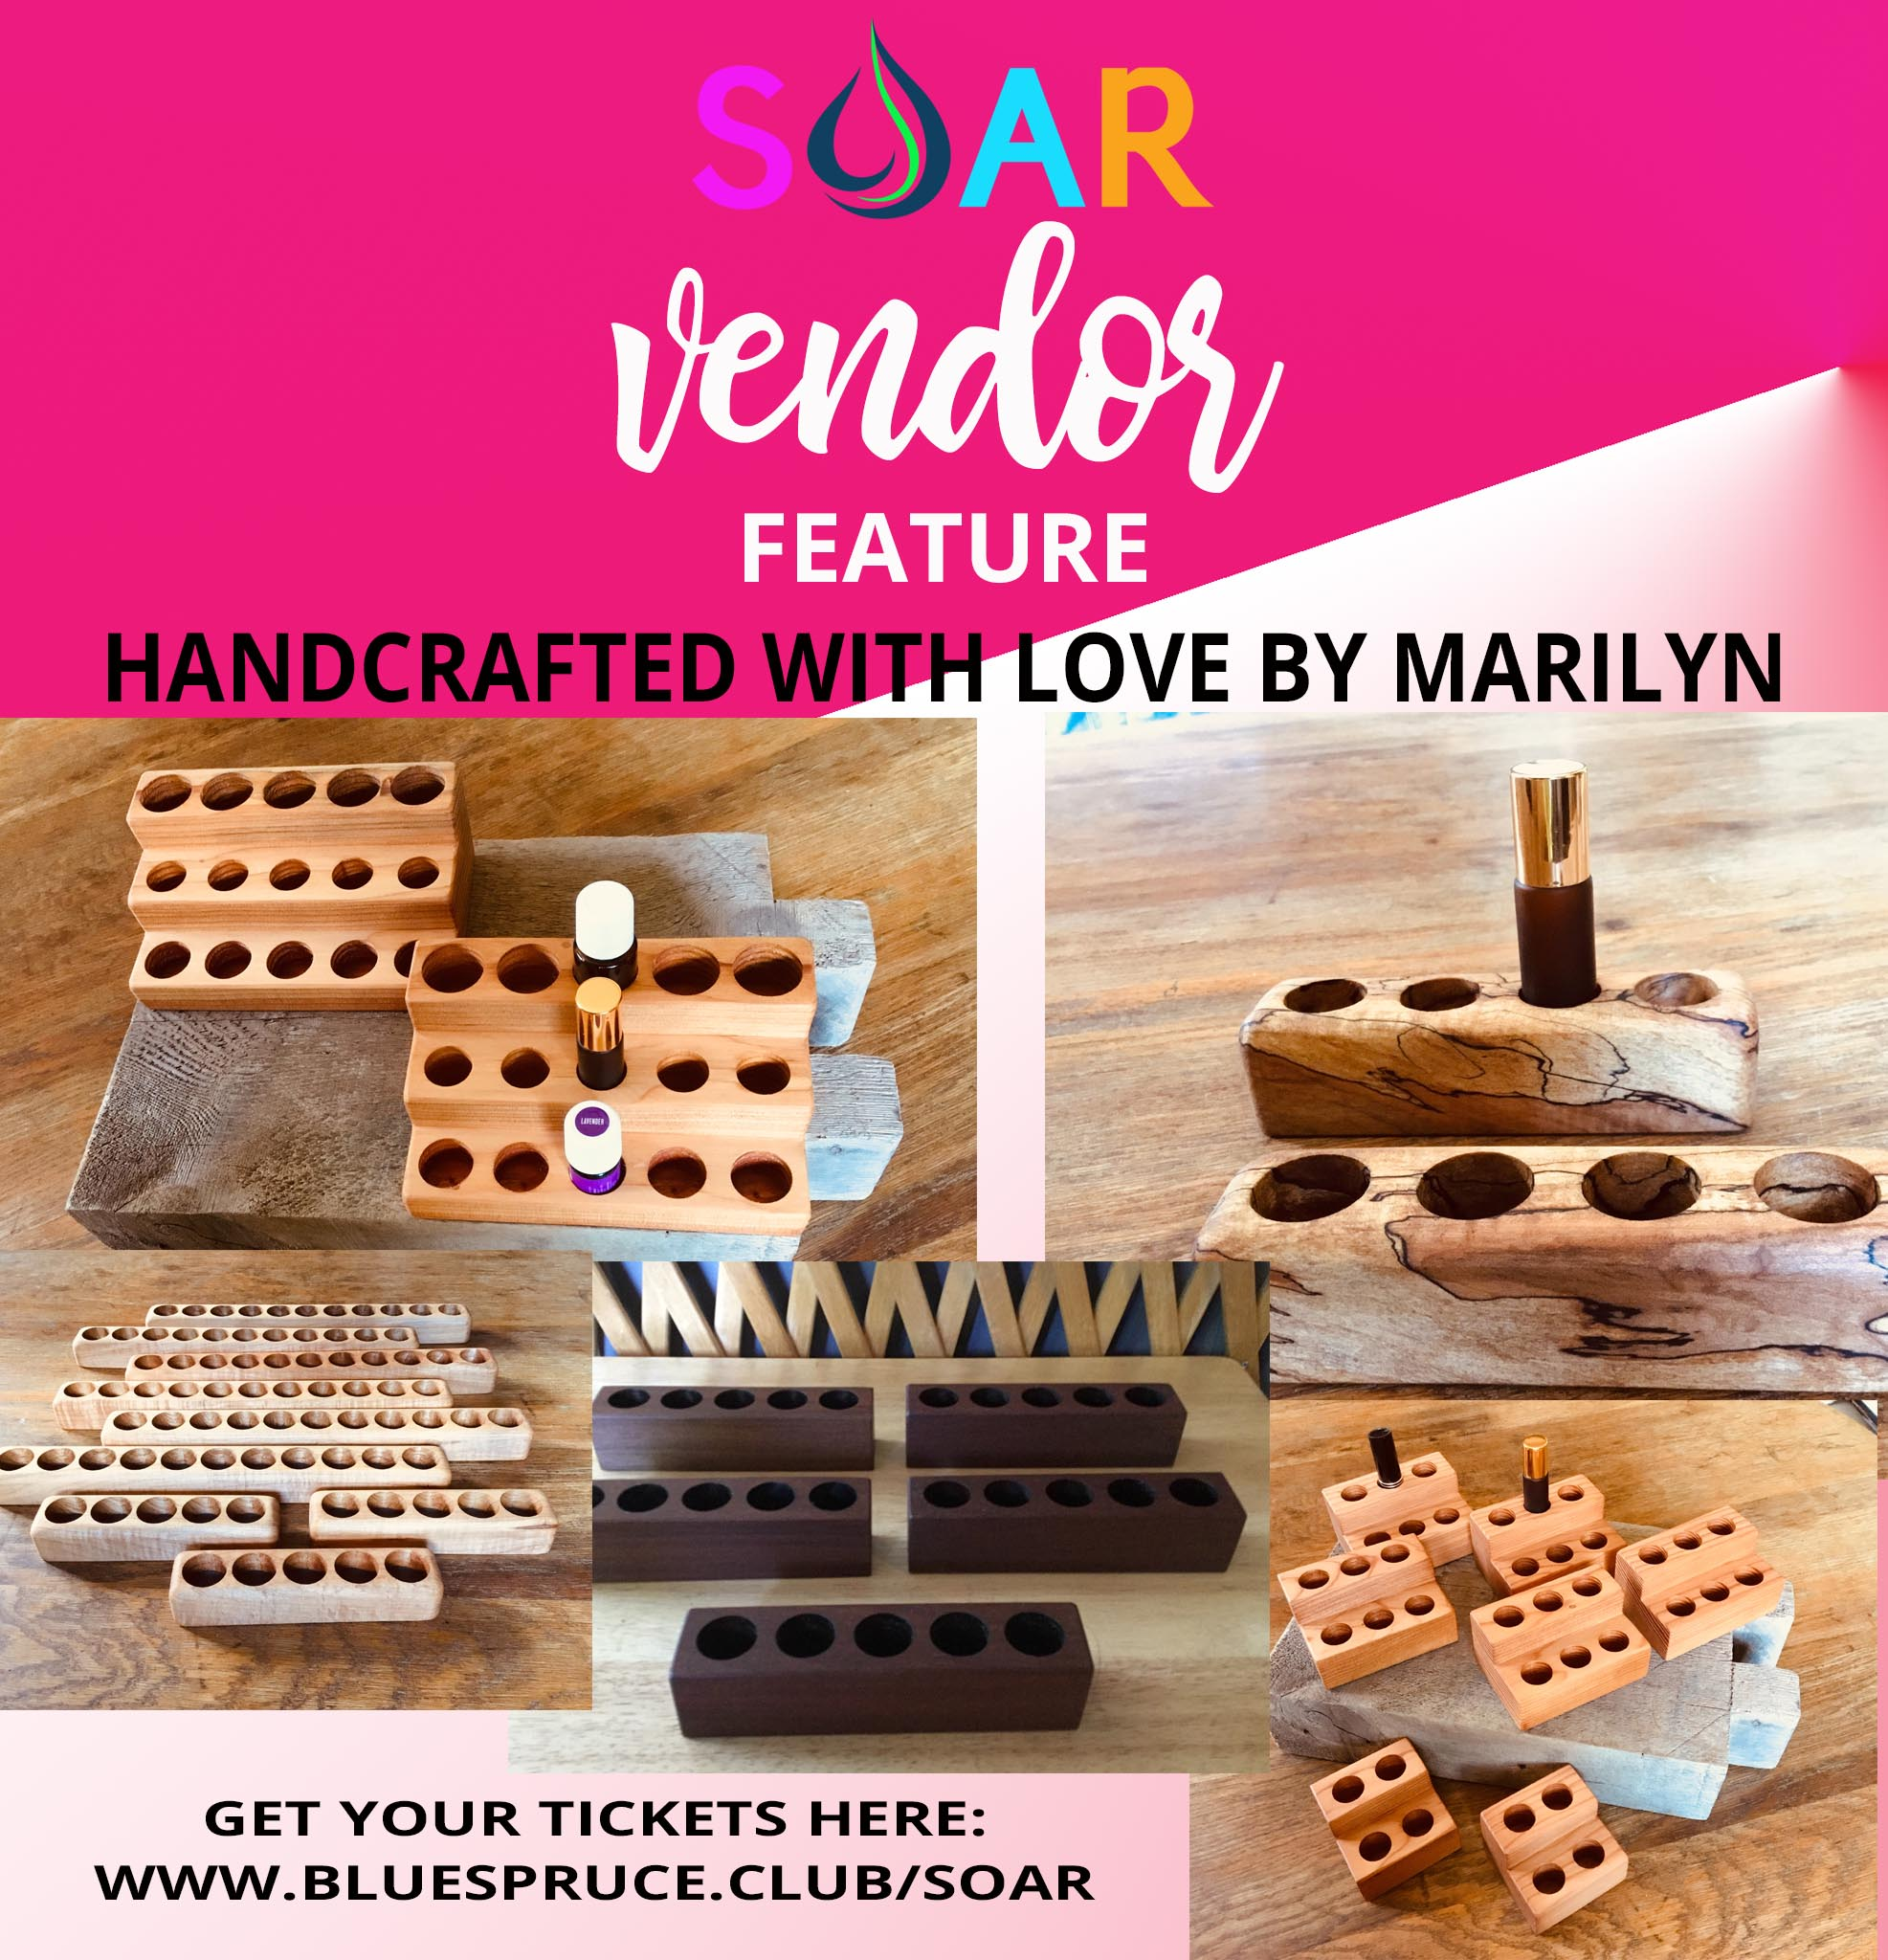 SOAR Vendor feature Handcrafted with Love by Marilyn.jpg